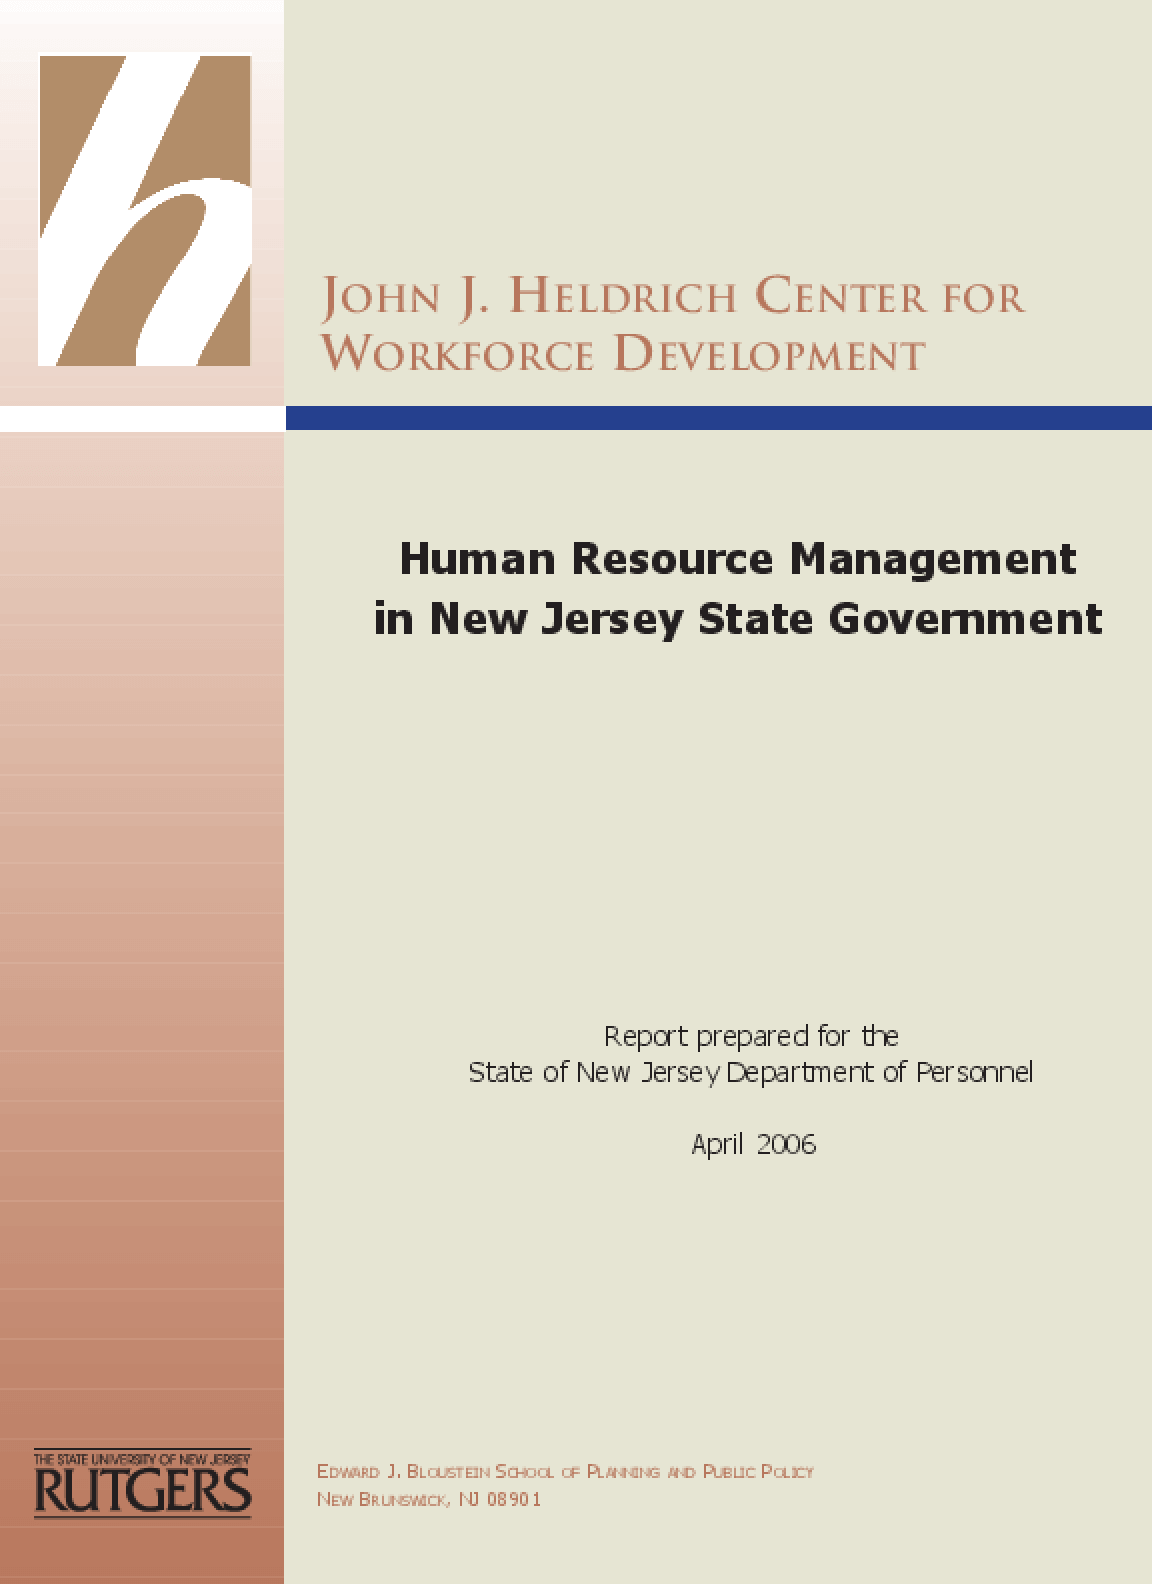 Human Resource Management in New Jersey State Government